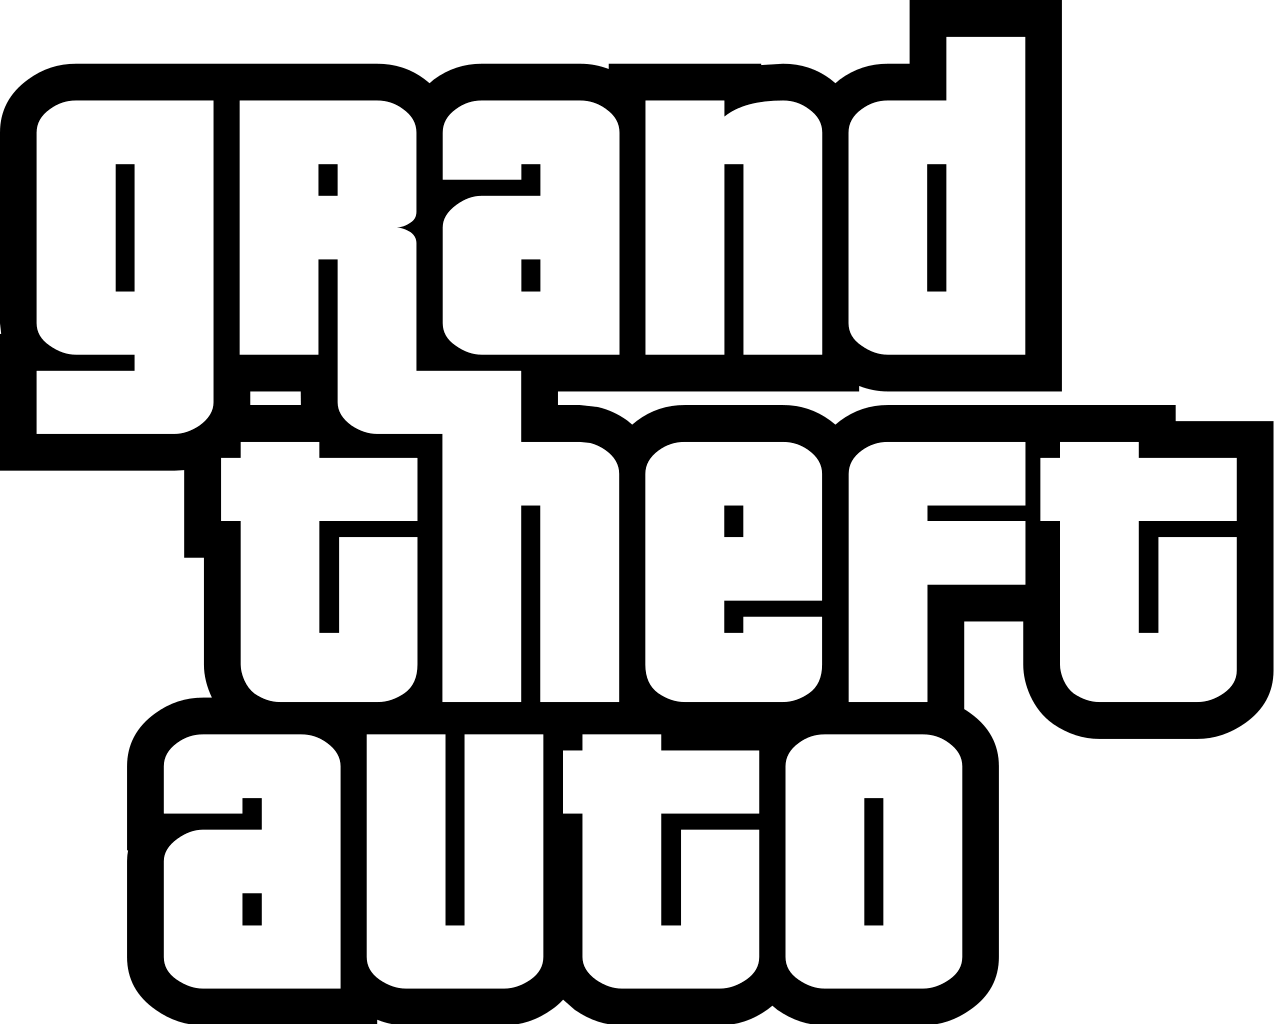 1275px-Grand_Theft_Auto_logo_series.svg_.png